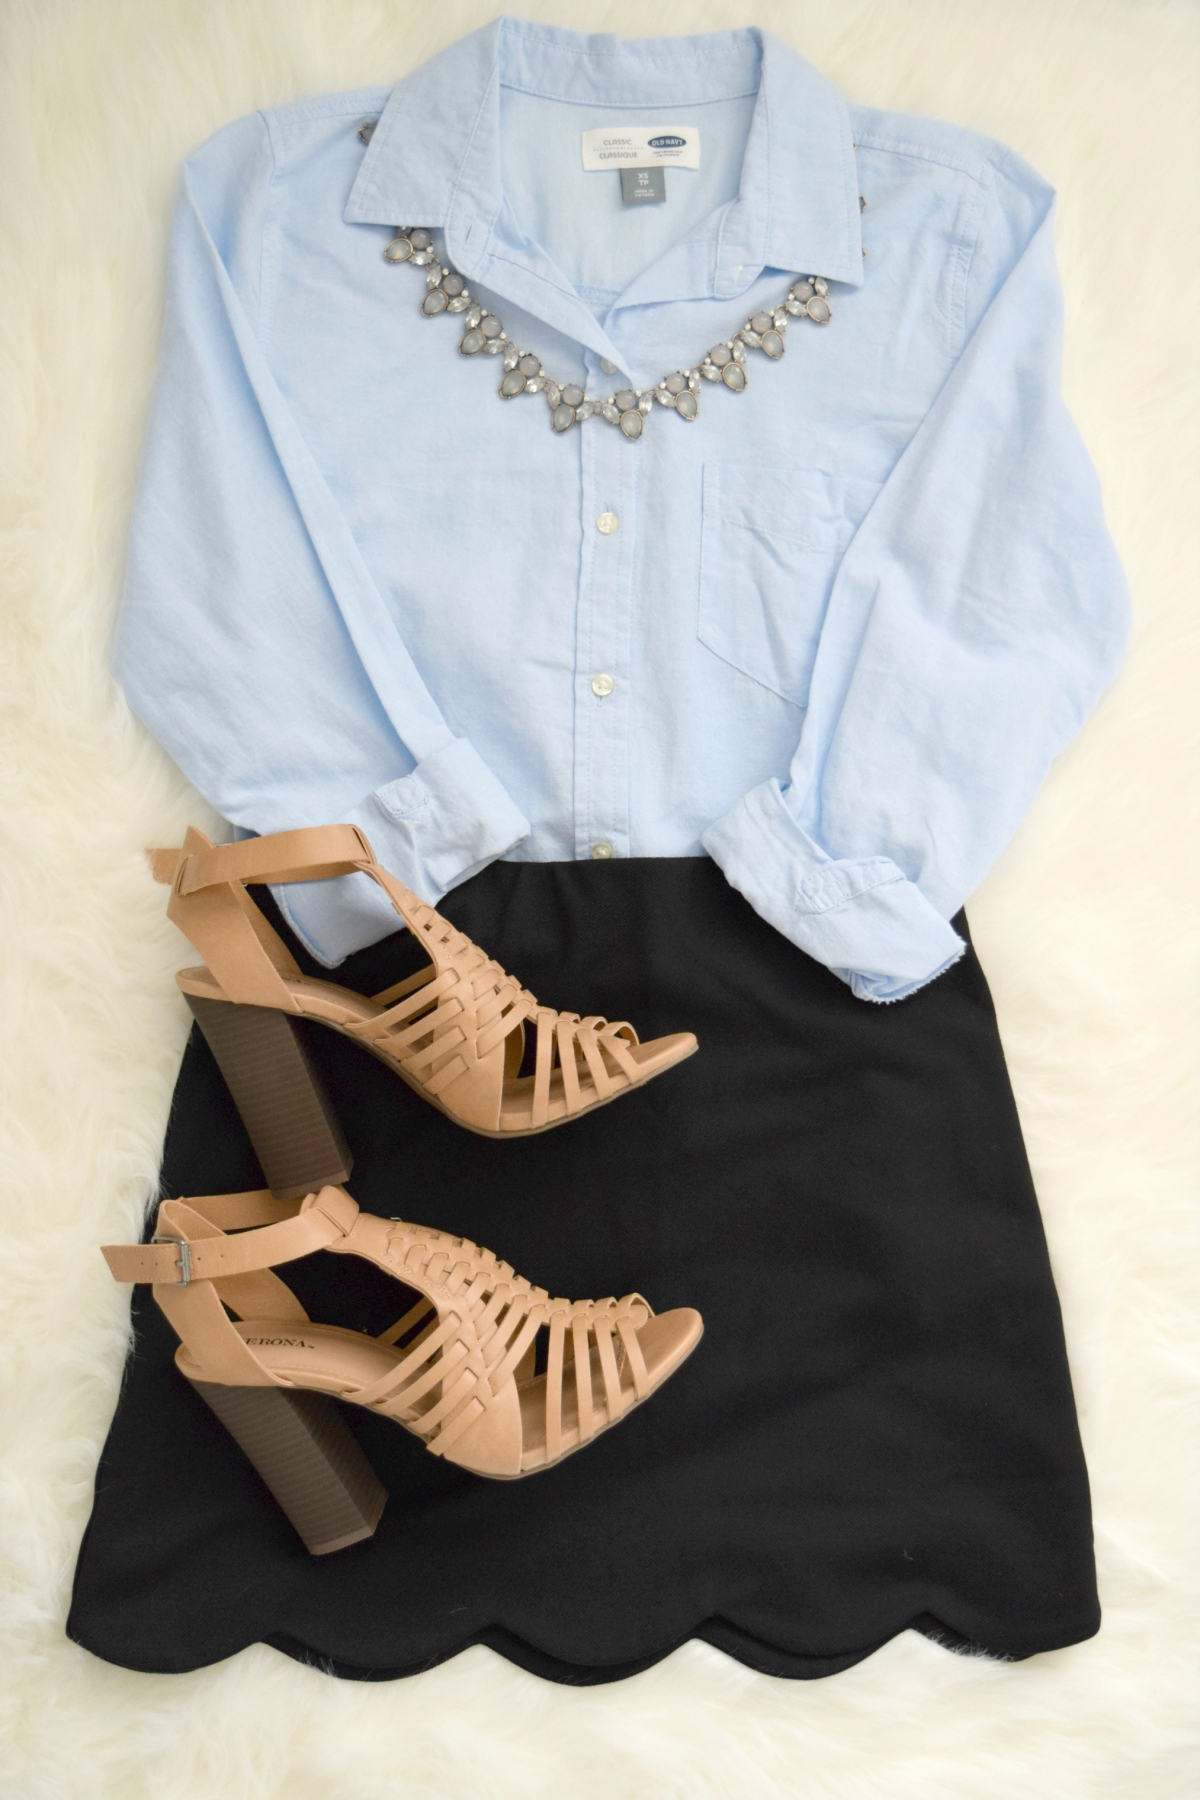 Casual sexy: classic buttondown with a scallop-hem skirt and nude heels |www.pearlsandsportsbras.com|